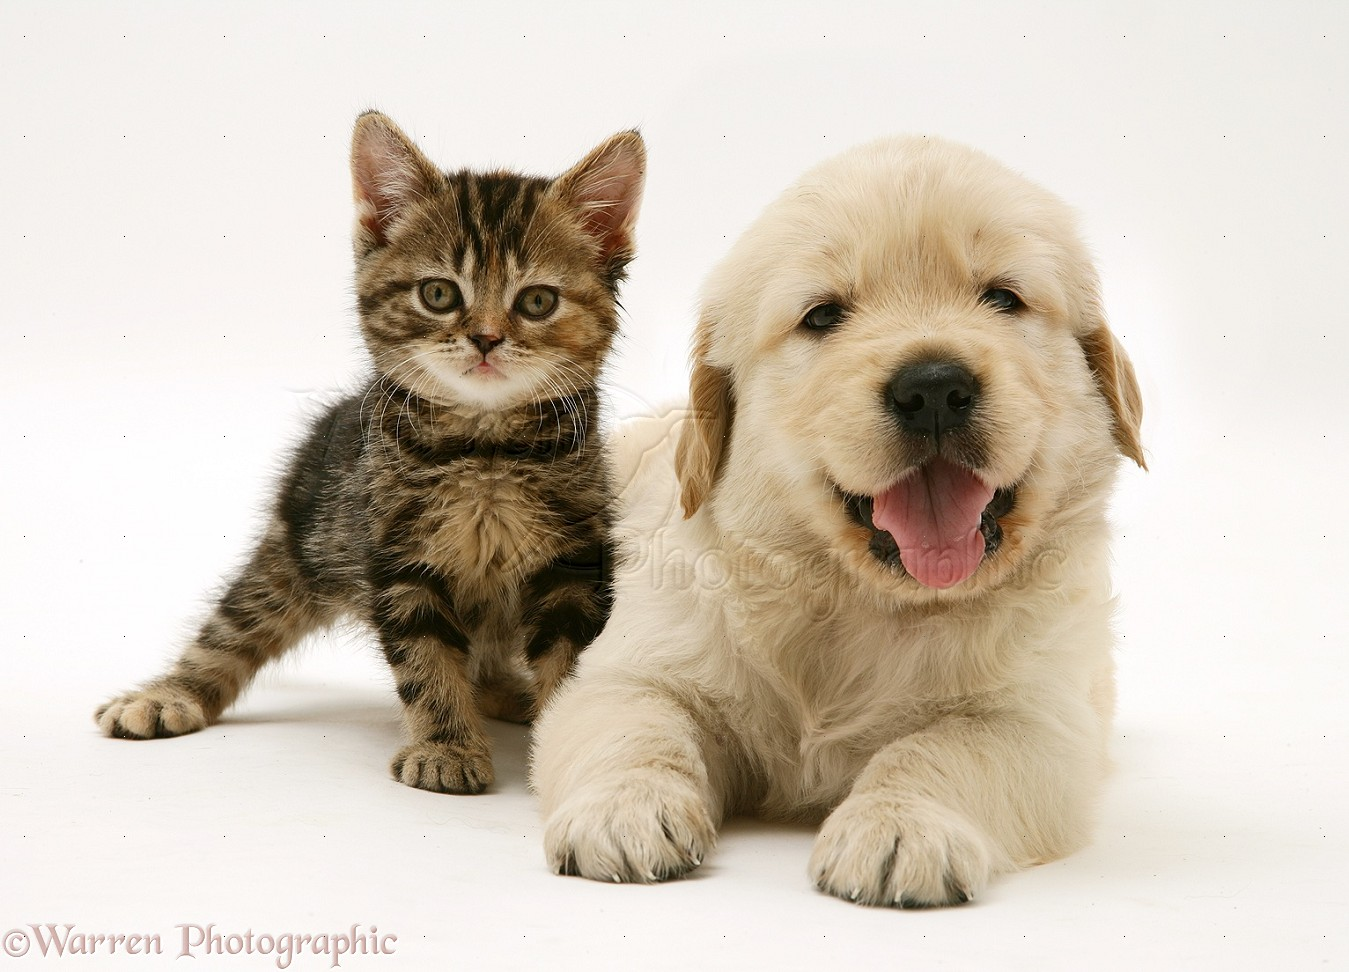 1349x972 - Cute Puppy and Kitten 40